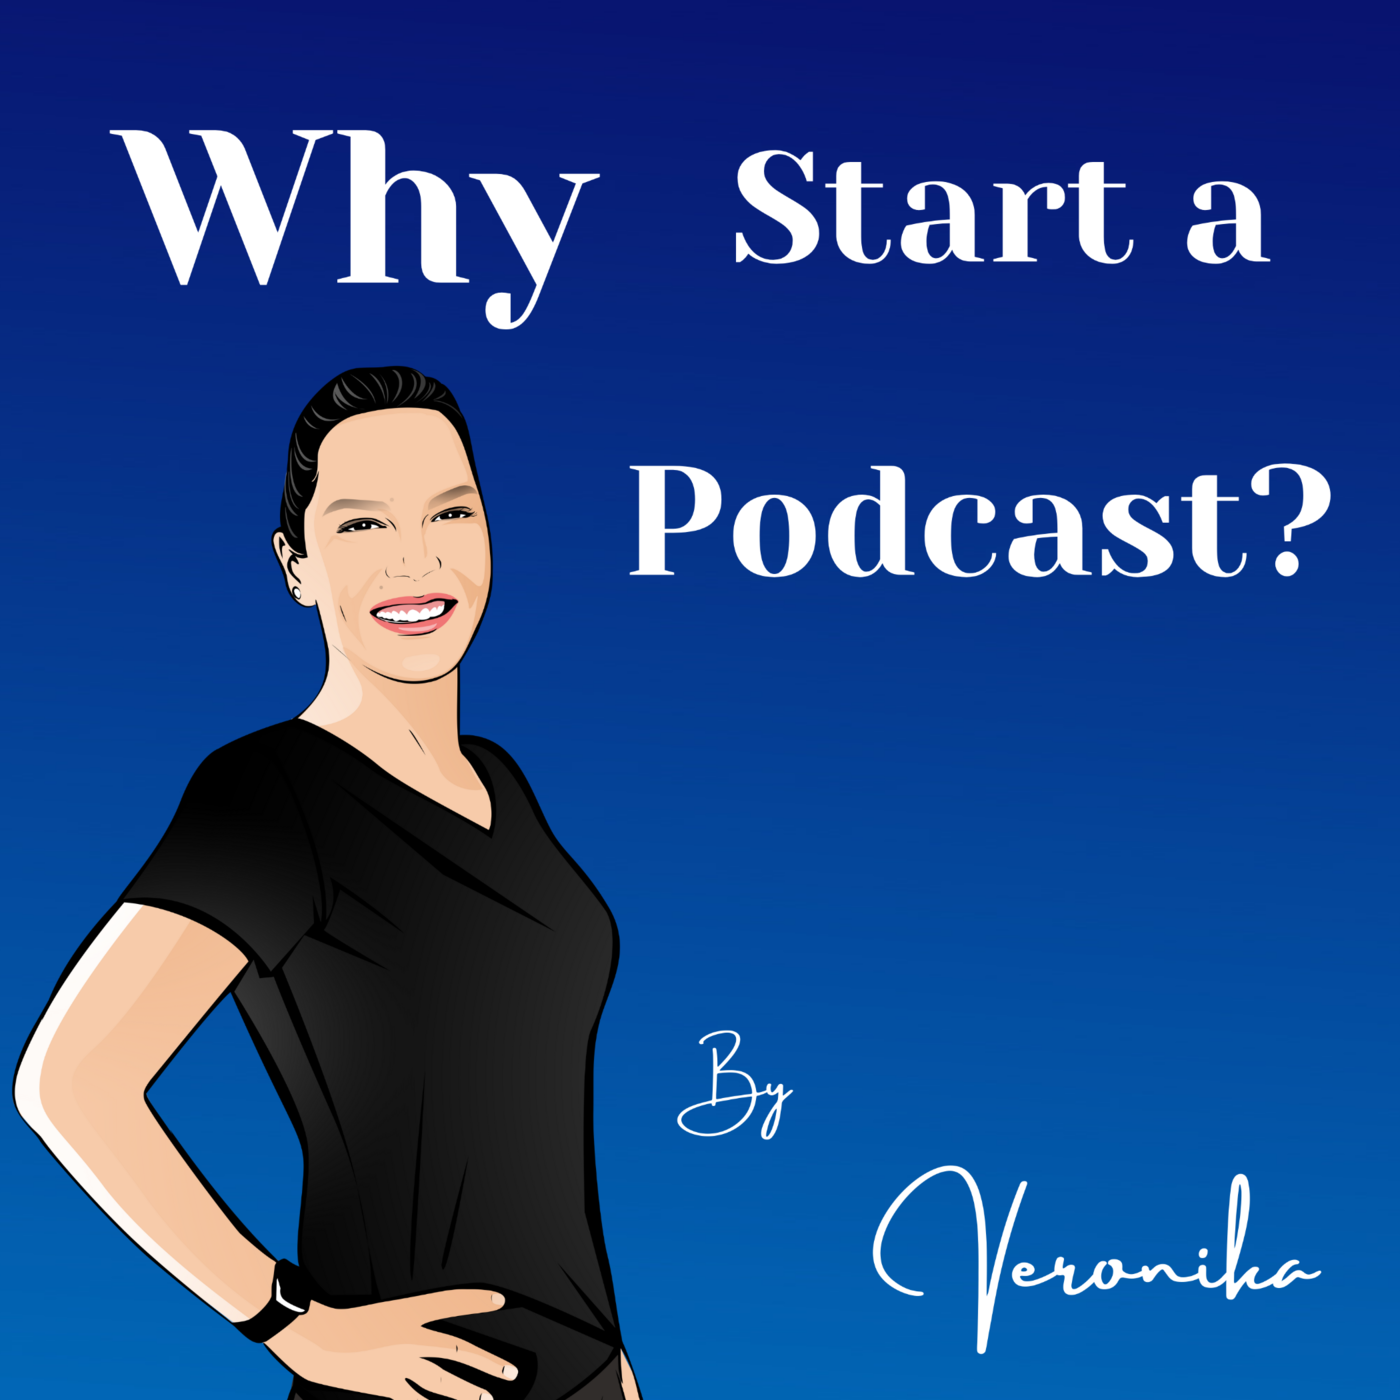 Starting a Podcast is Good for Business